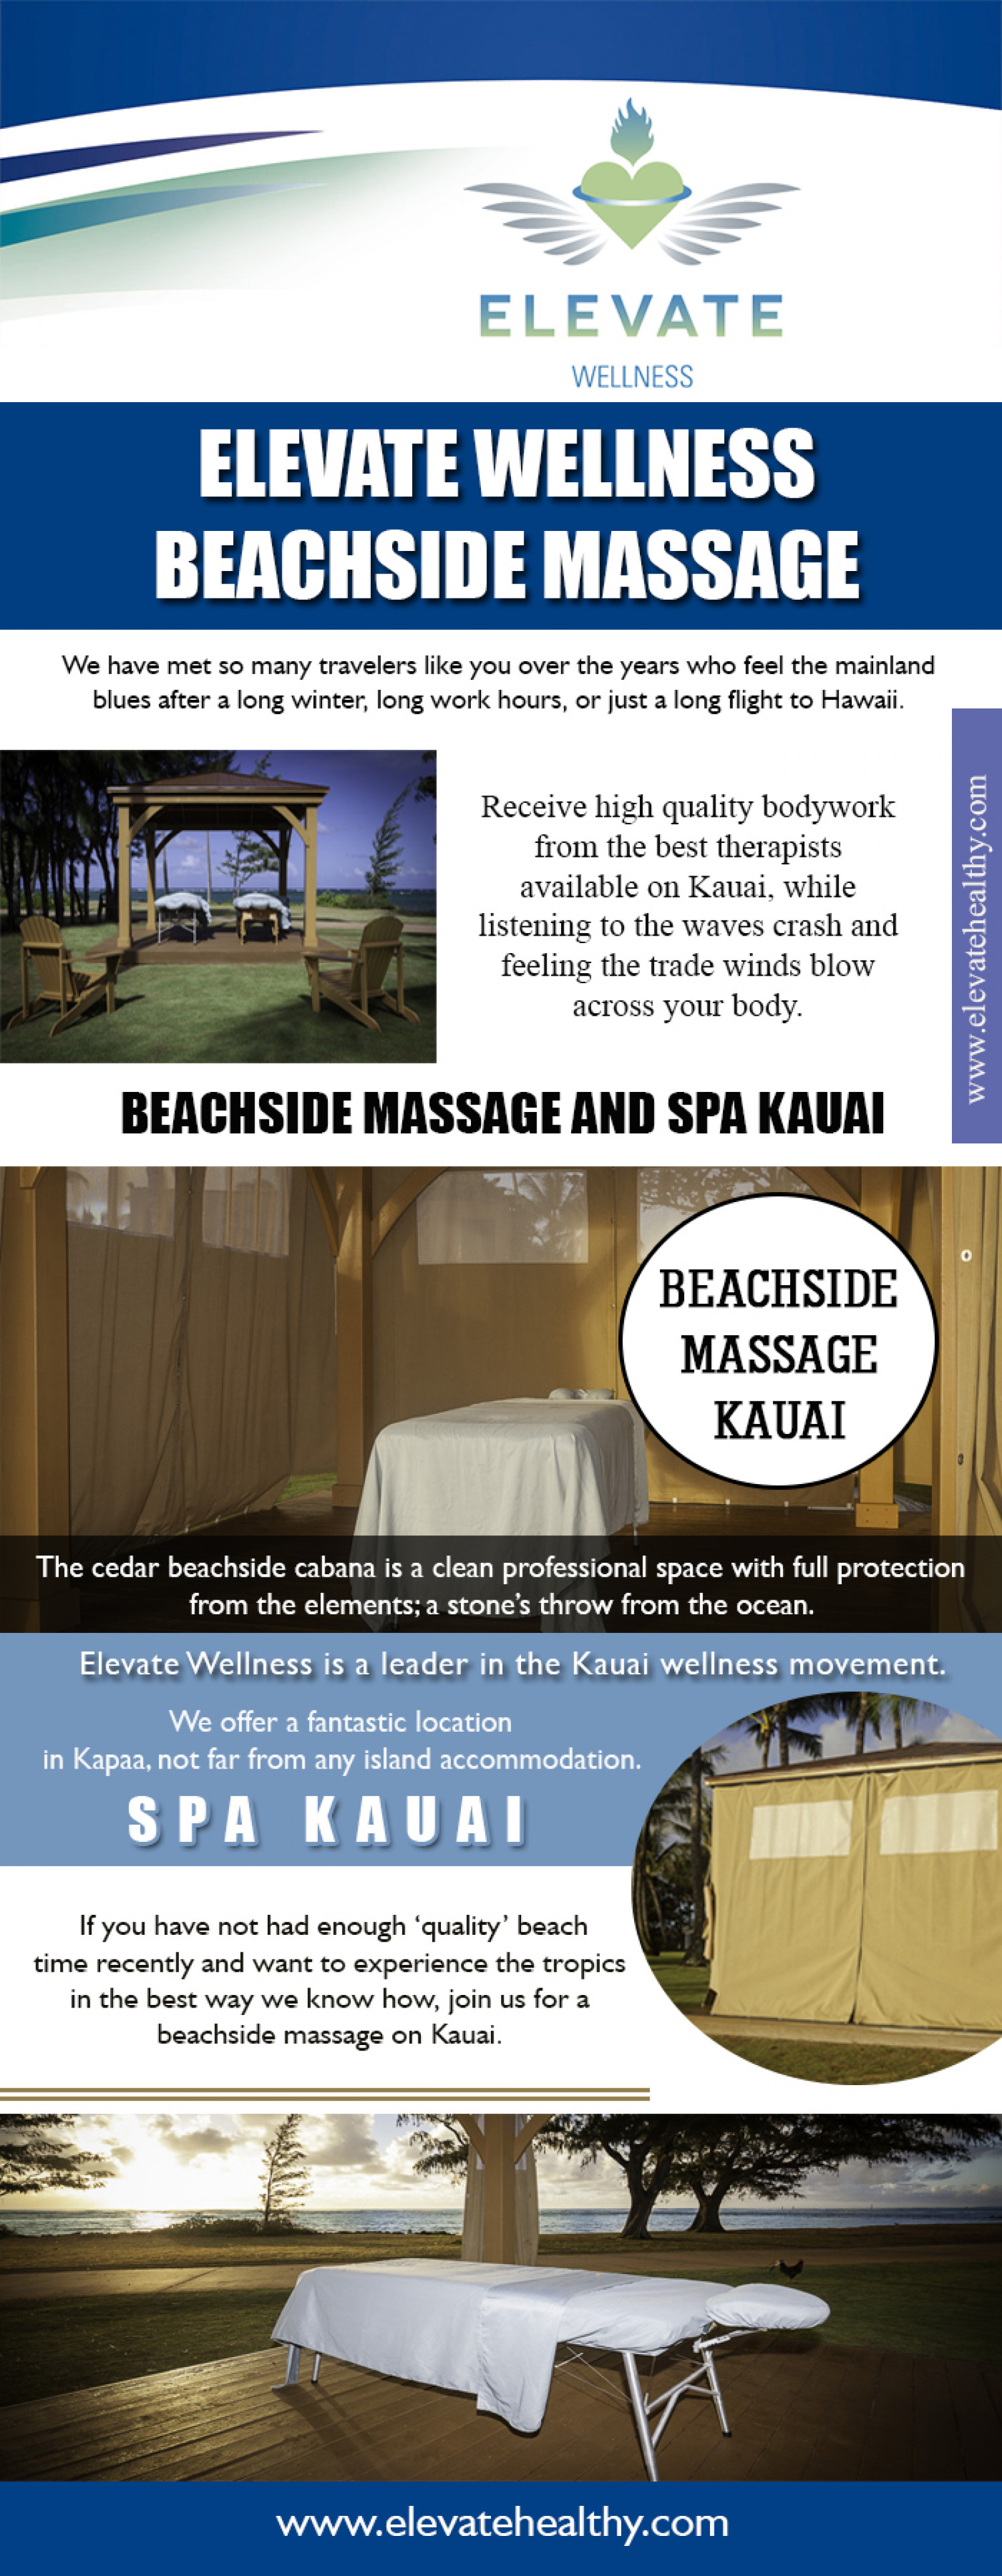 Elevate Wellness Beachside Massage Infographic